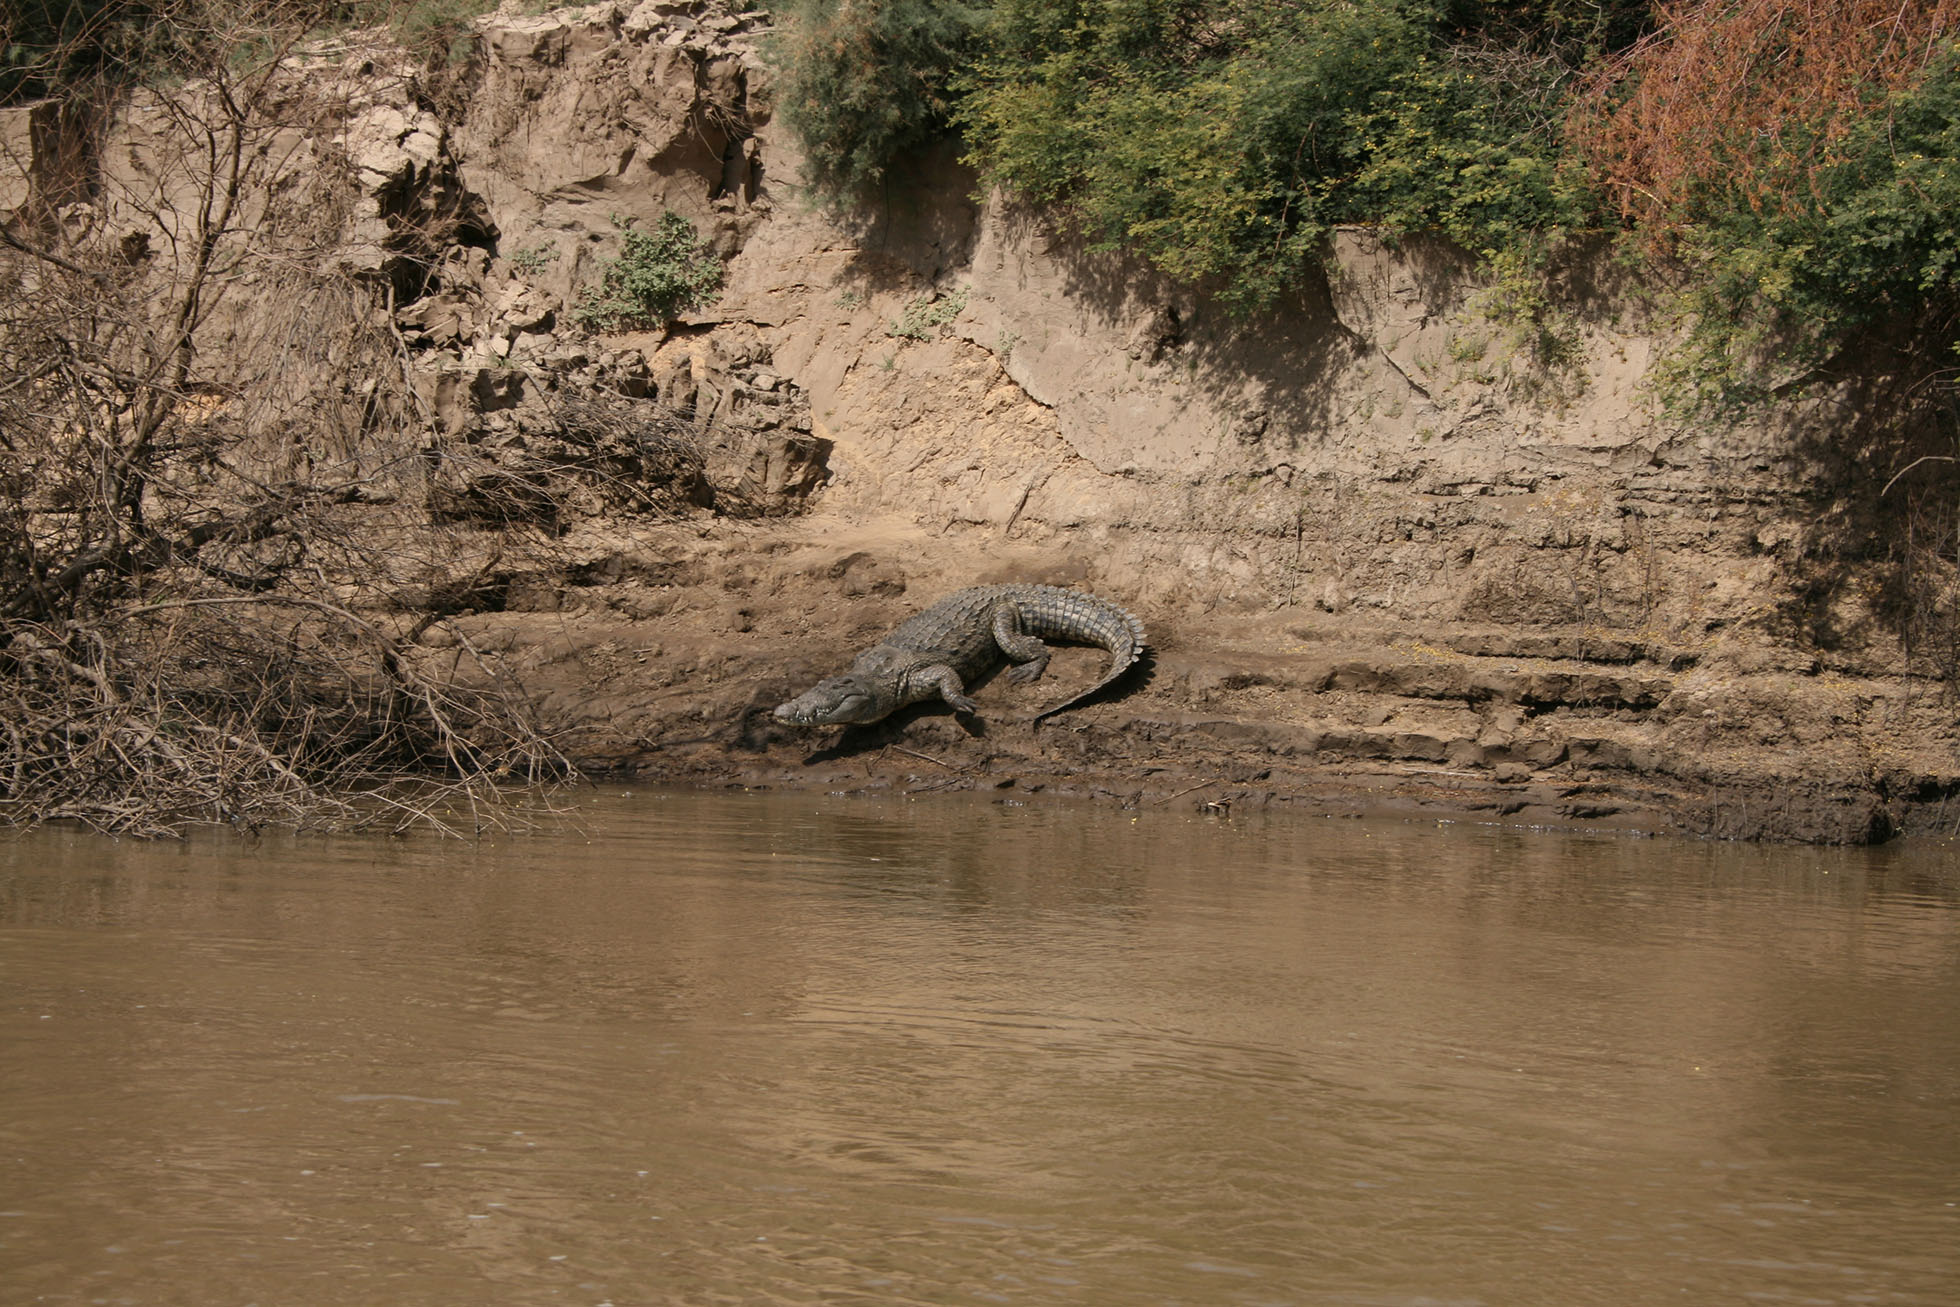 Photograph of a crocodile entering the river.